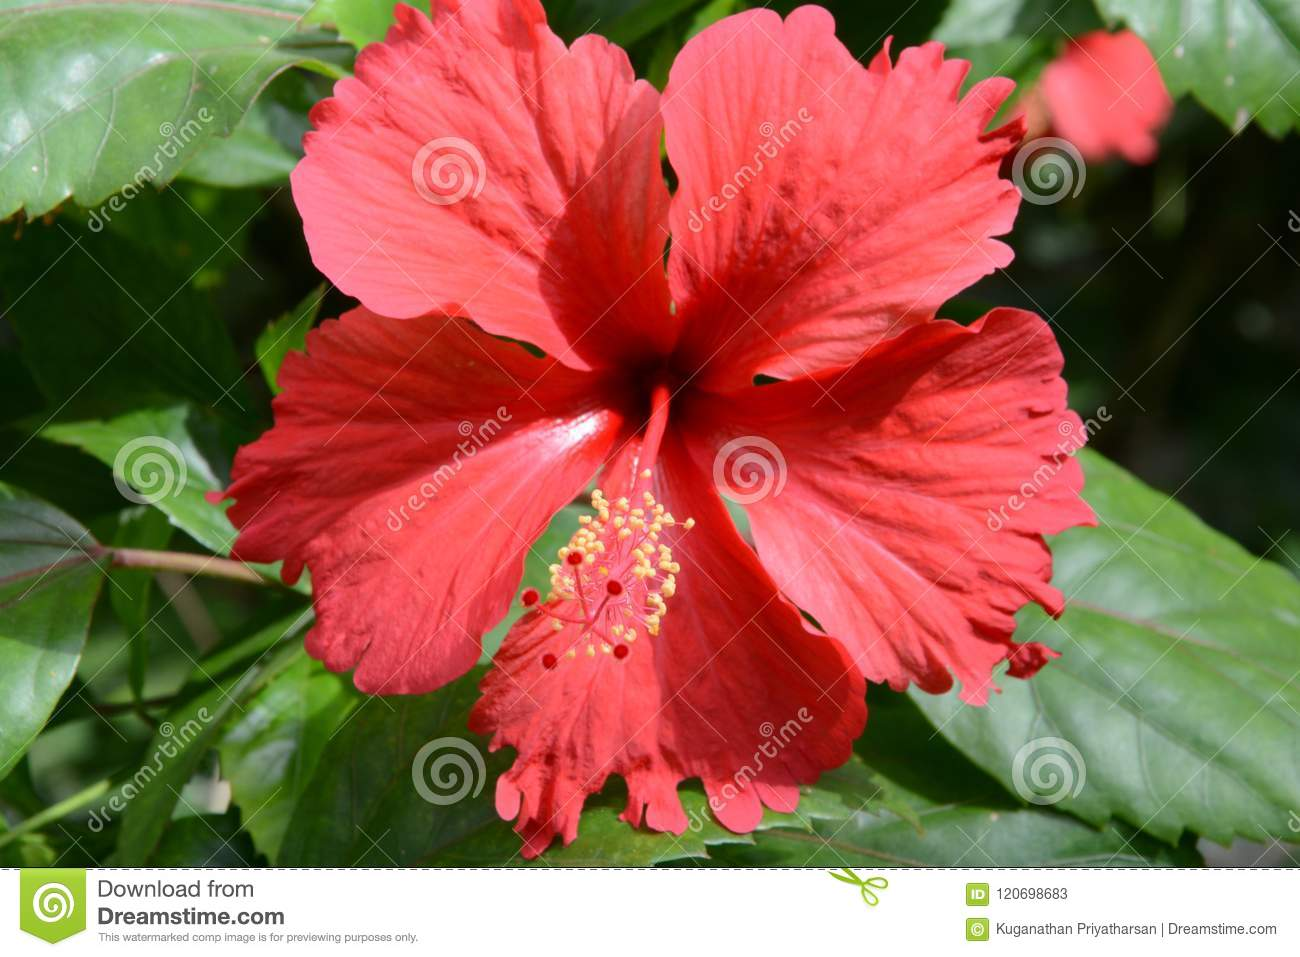 Red Shoe Flower Also Known As Shoeblackplant Stock Image Image Of